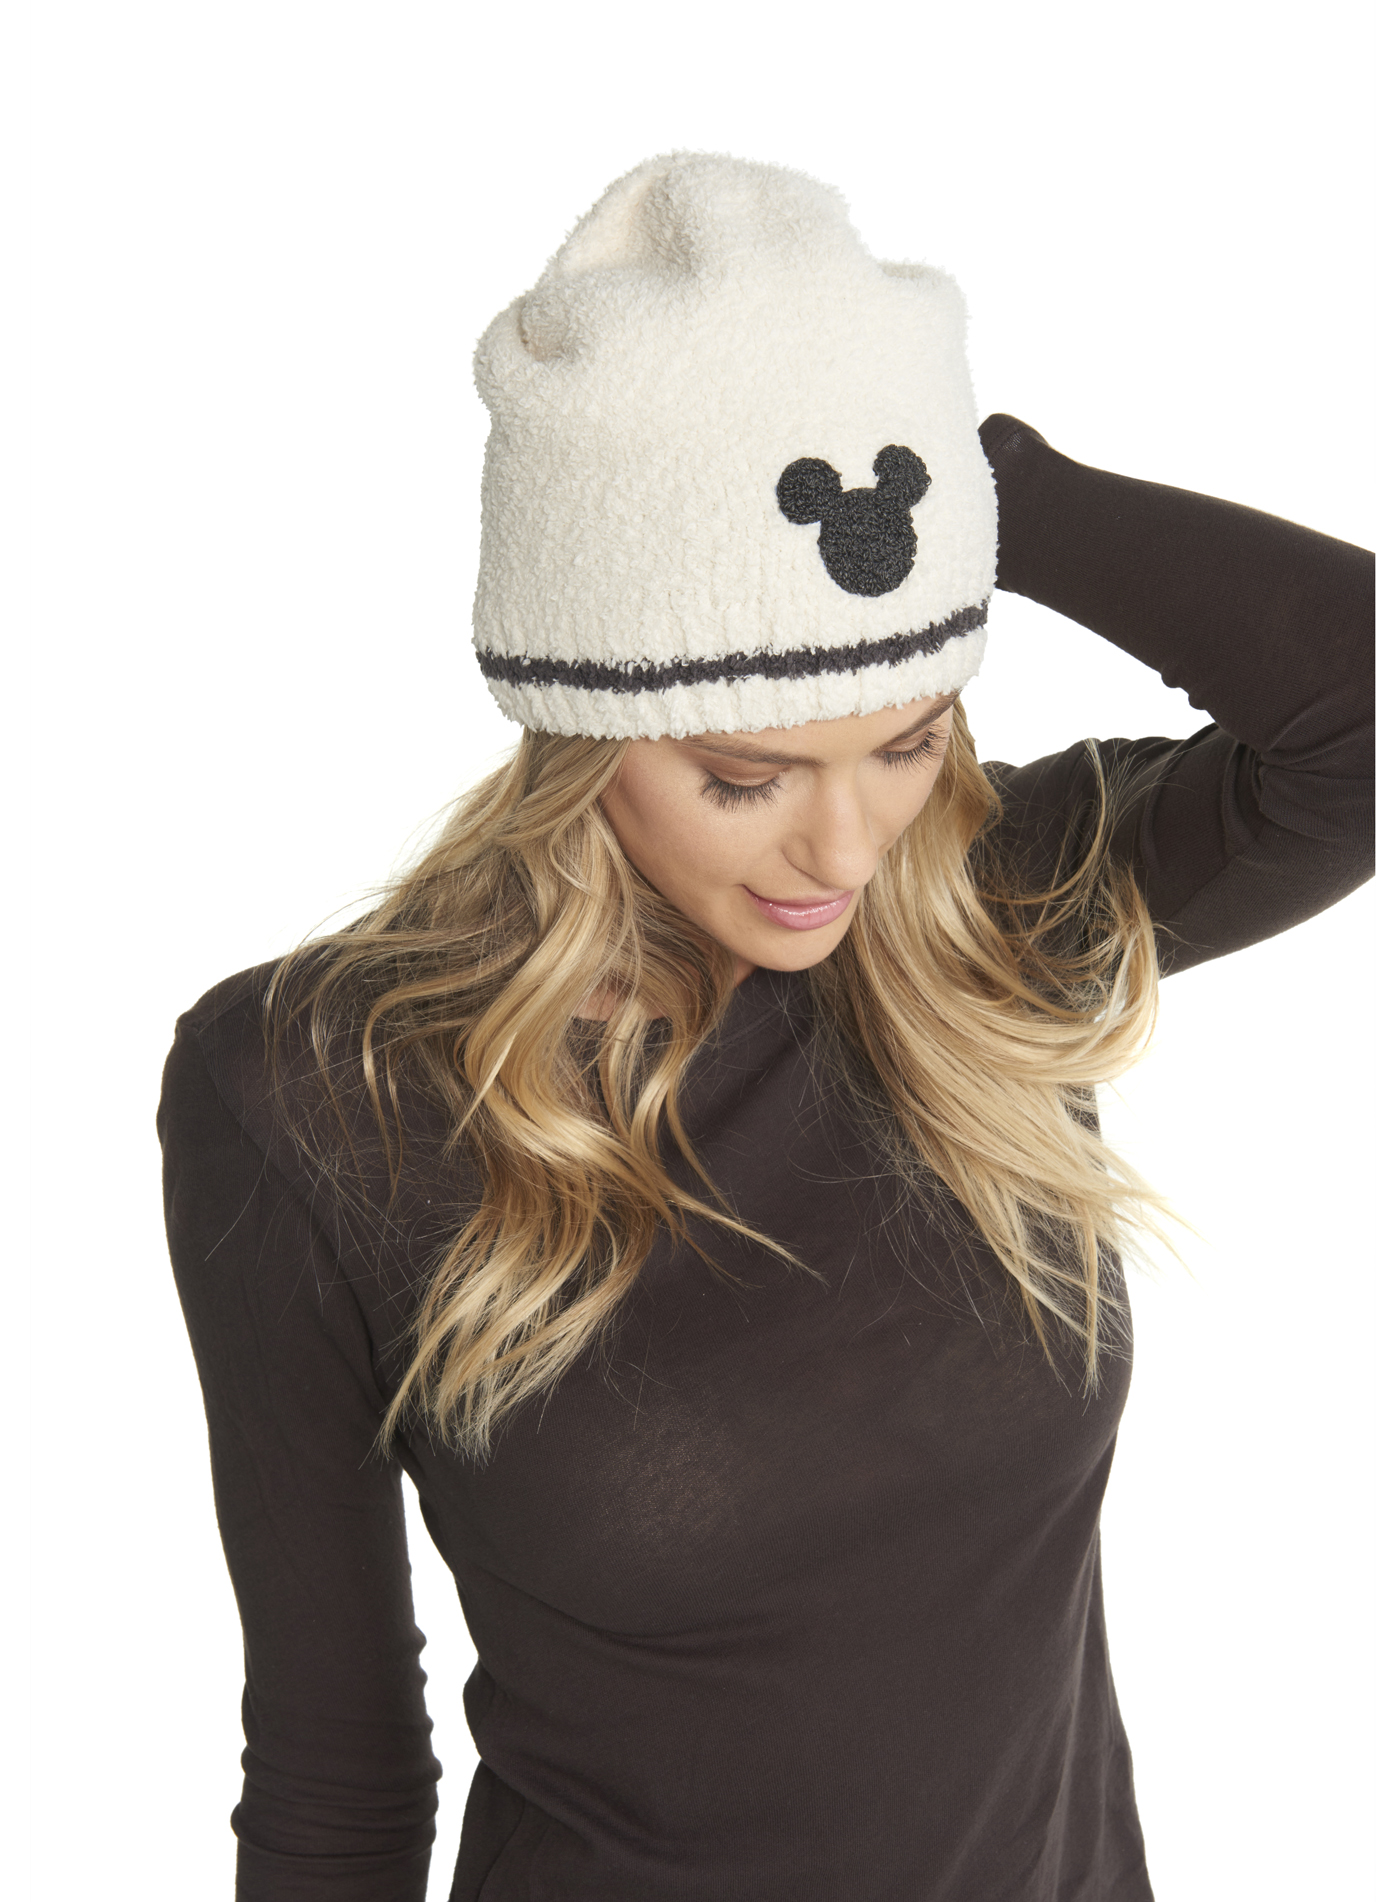 dec8212419e COZYCHIC® CLASSIC DISNEY MICKEY MOUSE ADULT BEANIE. Product Main Image  Zoomed Image  Product Image 2 Zoomed Image  Product Image 3 Zoomed Image ...